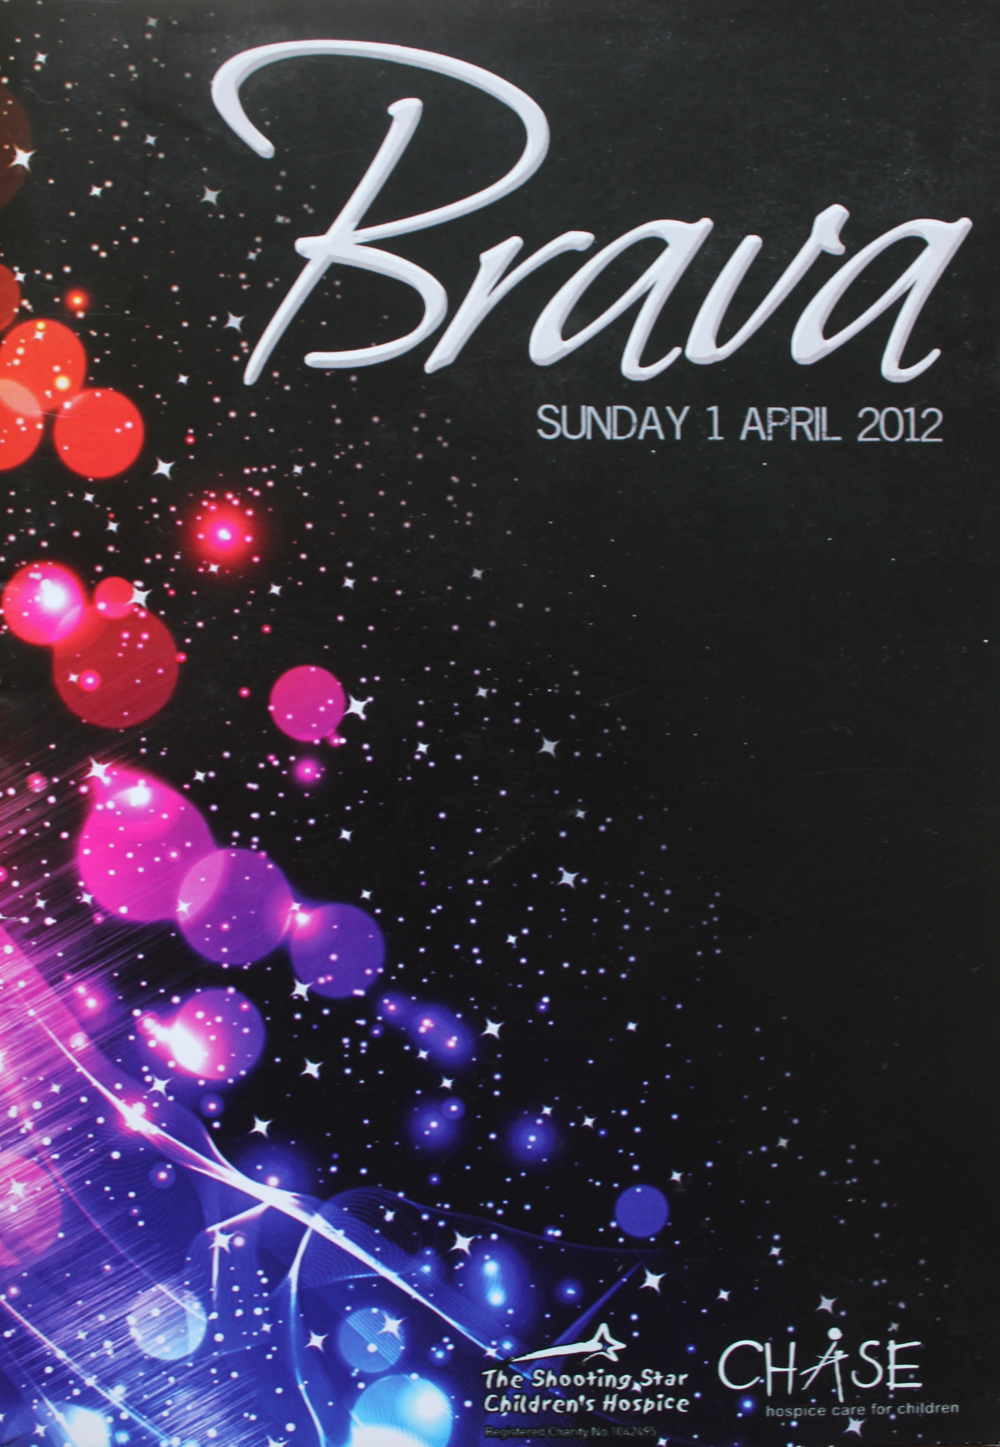 Brava, G-Live, conducted and produced by Alex Parker, orchestrations by Jude Obermüller